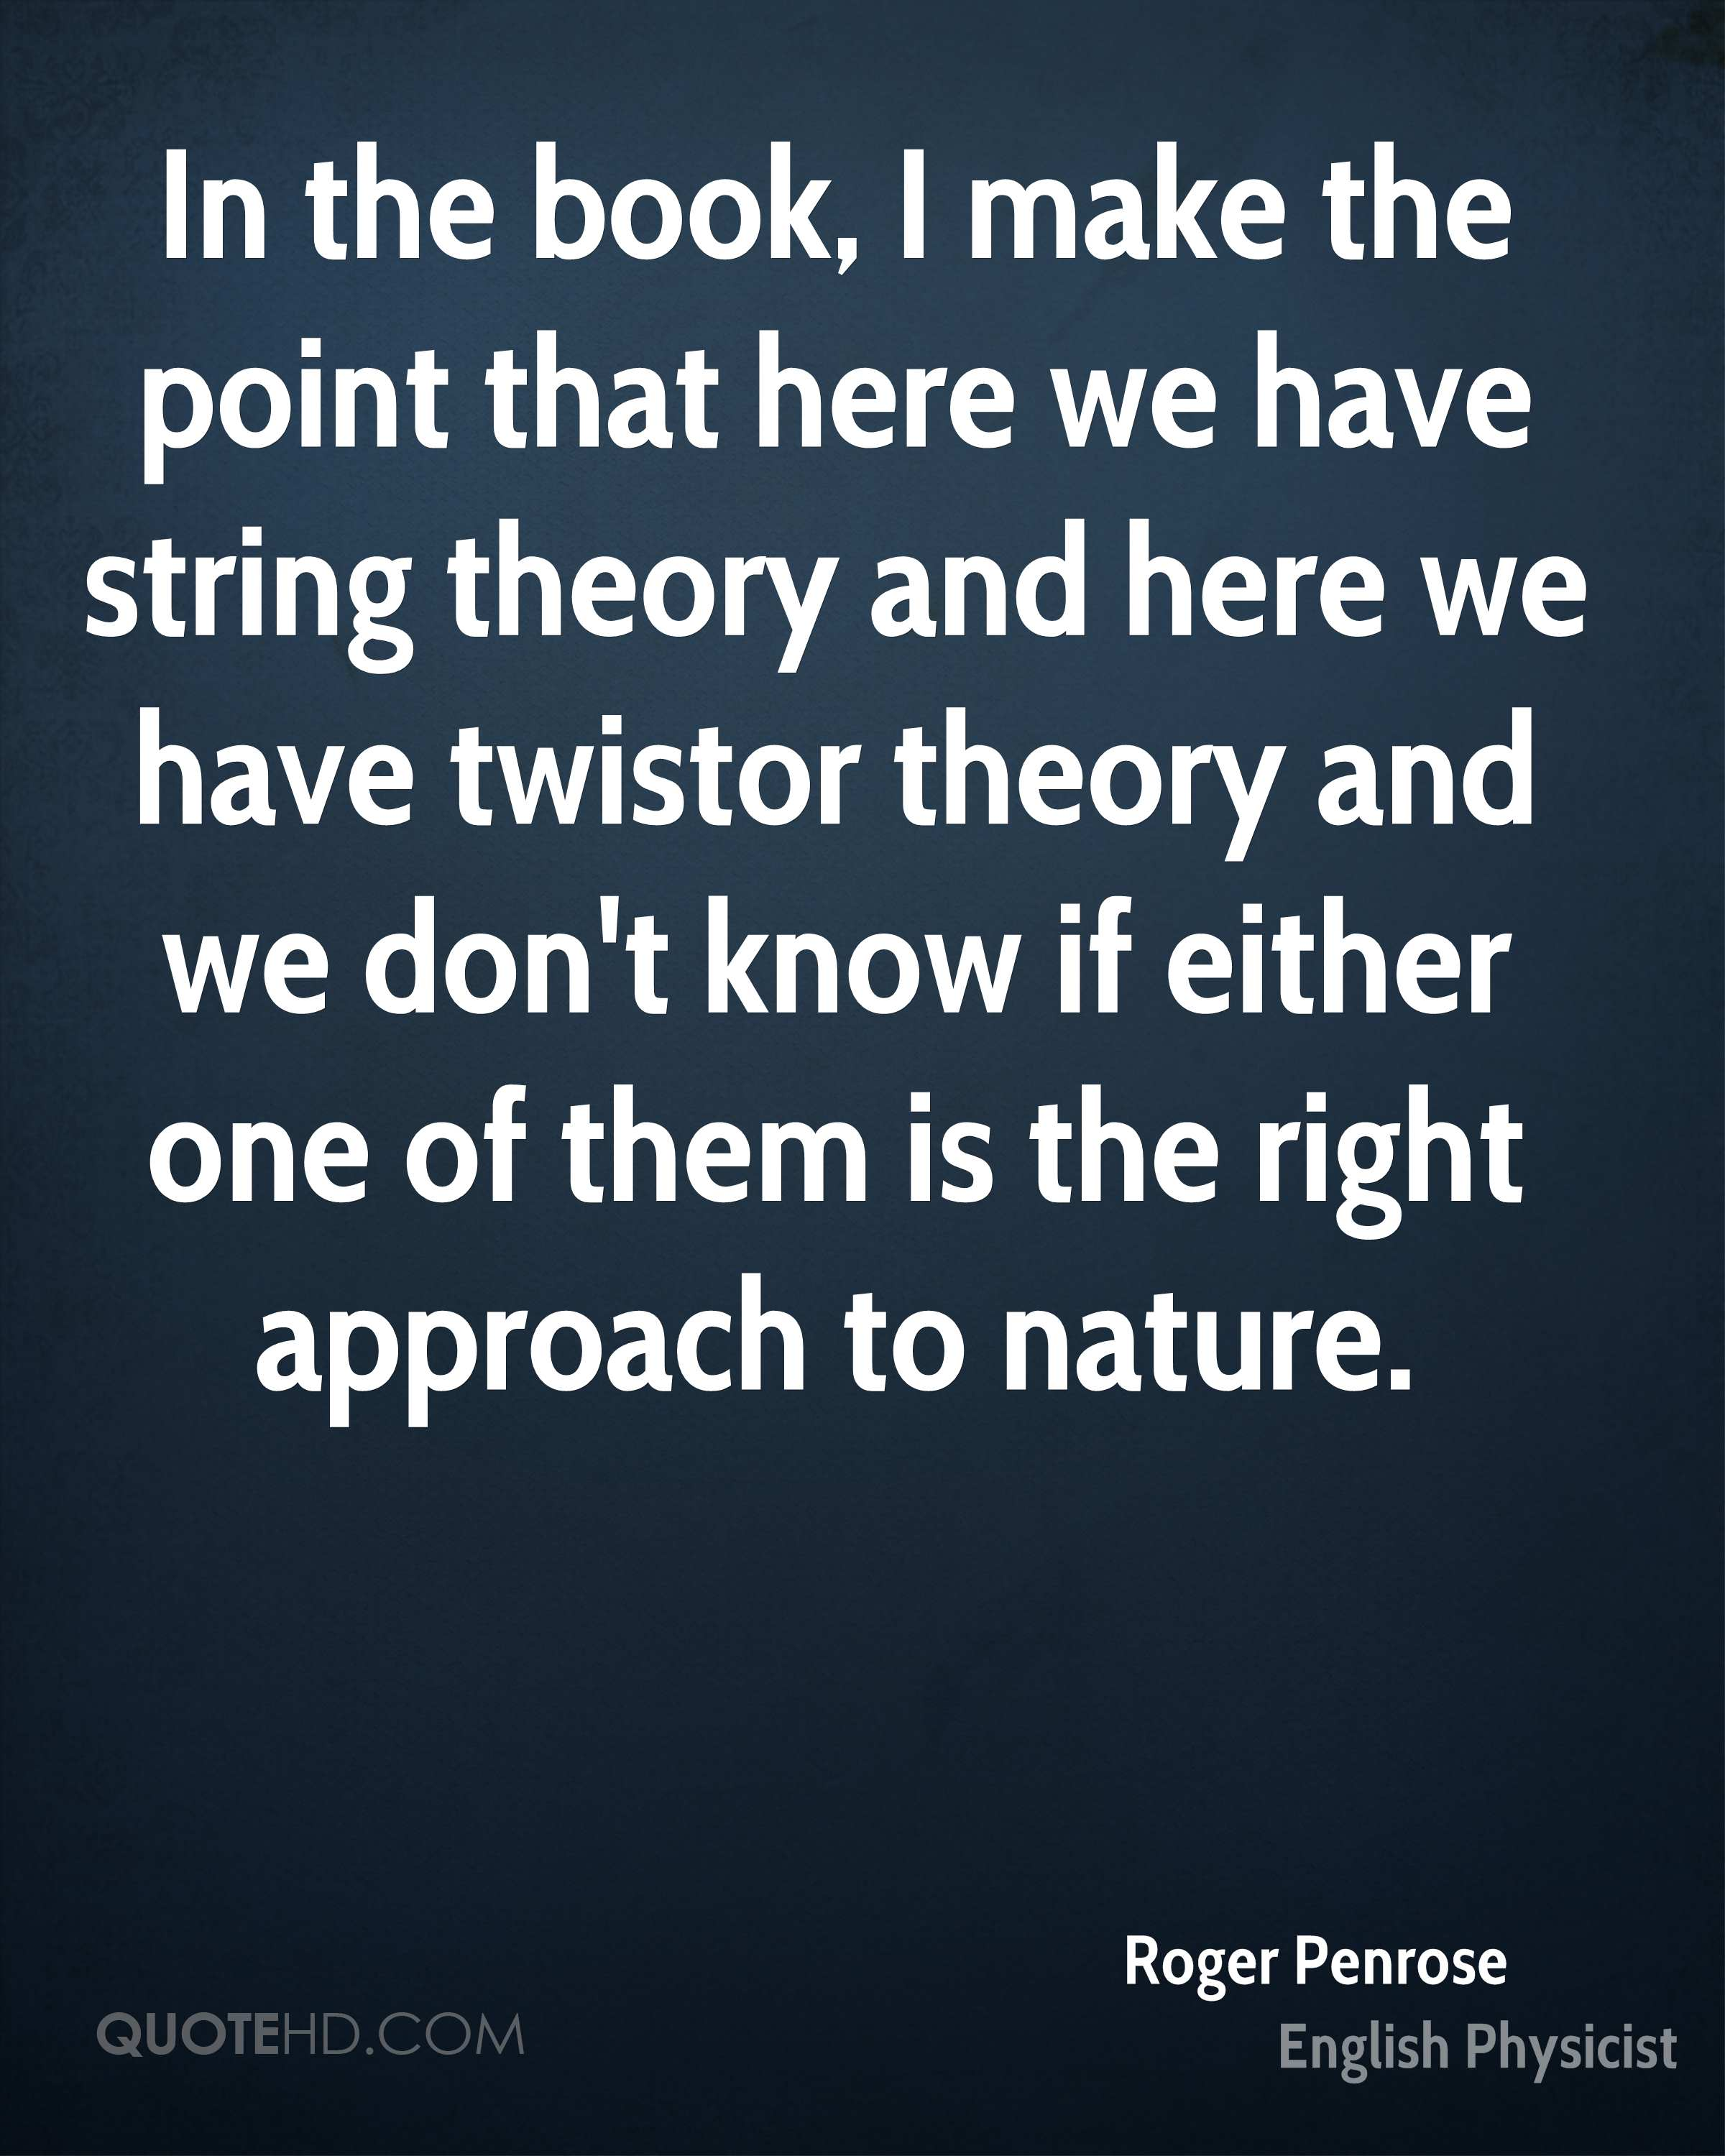 In the book, I make the point that here we have string theory and here we have twistor theory and we don't know if either one of them is the right approach to nature.